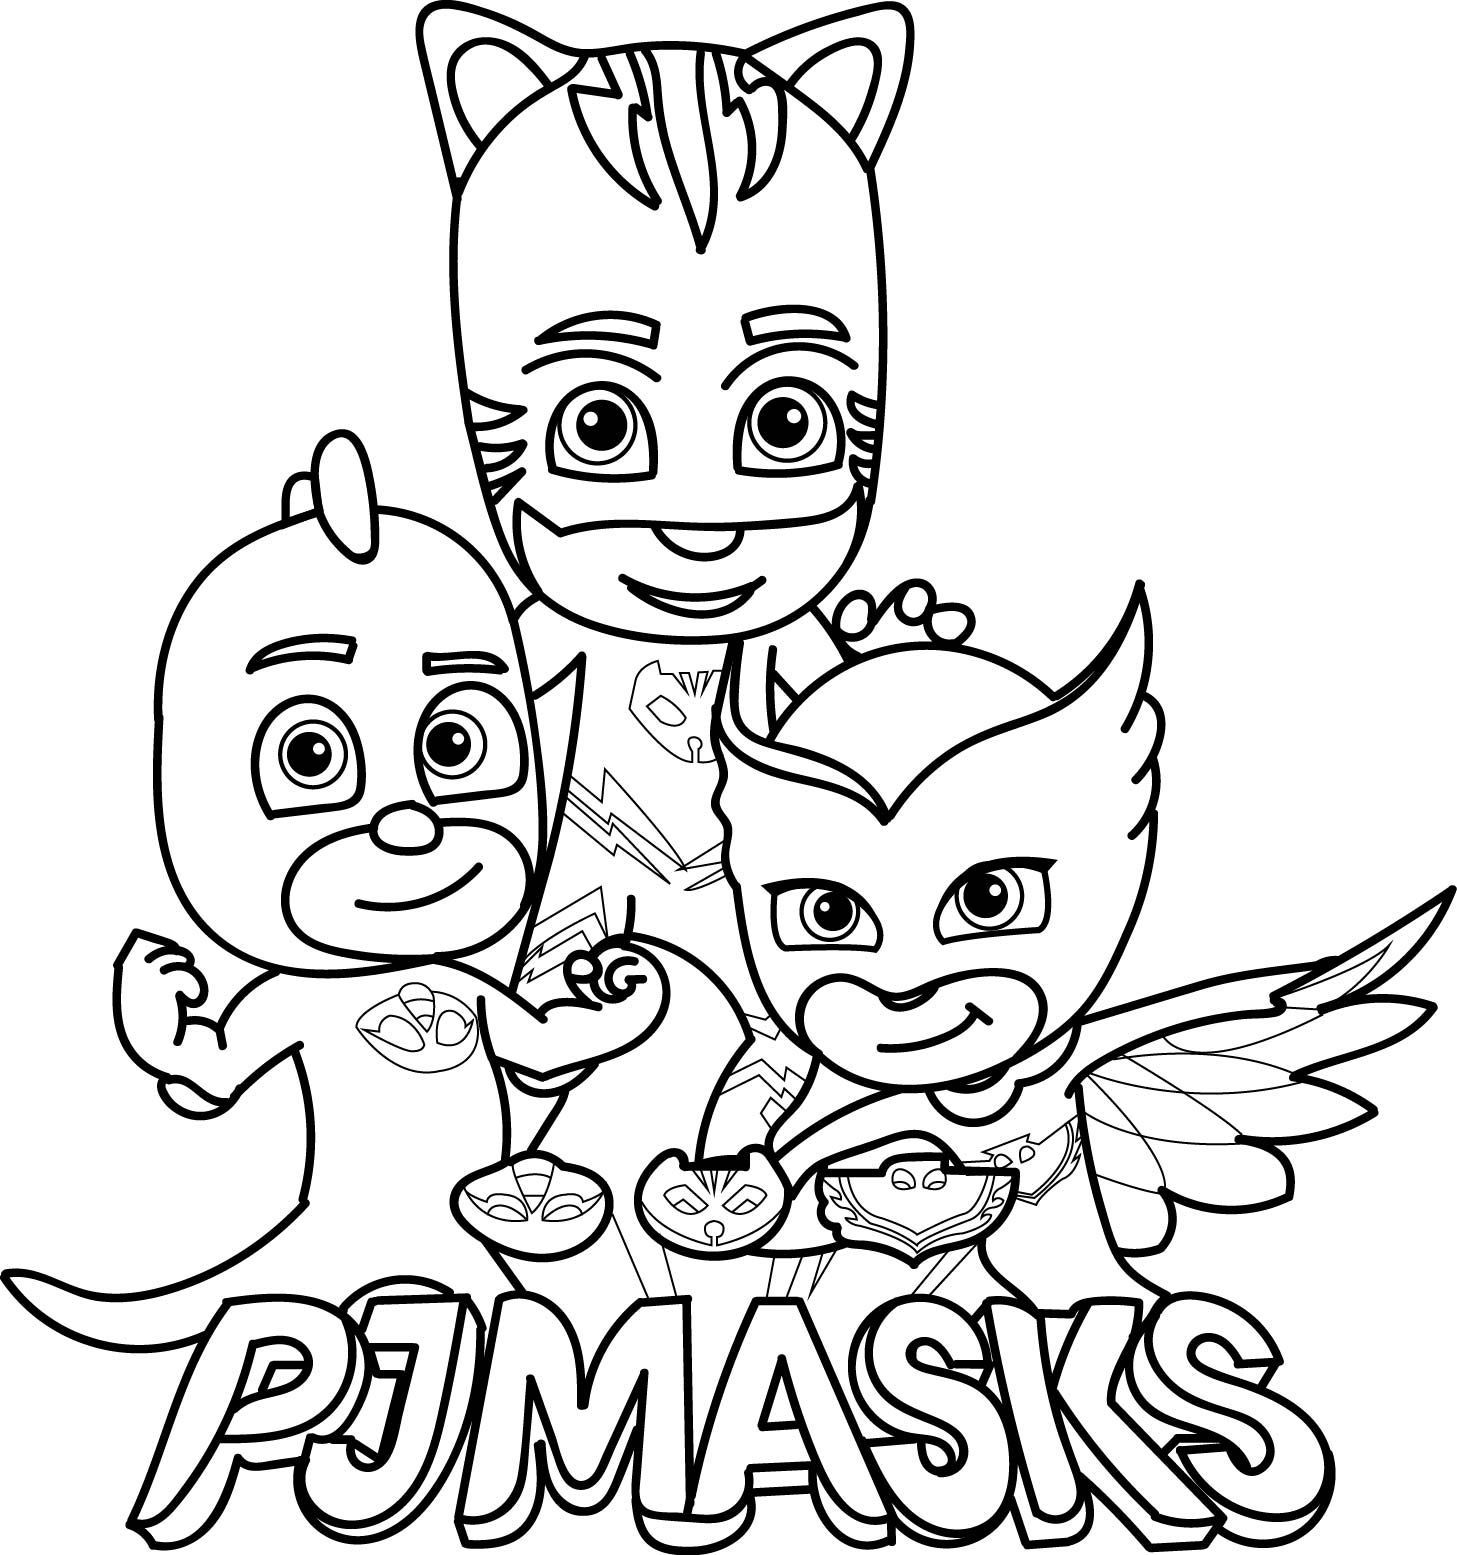 paw patrol mask coloring pages top 30 pj masks coloring pages Χρωμοσελίδες Απόκριες Πάρτι pages mask paw patrol coloring